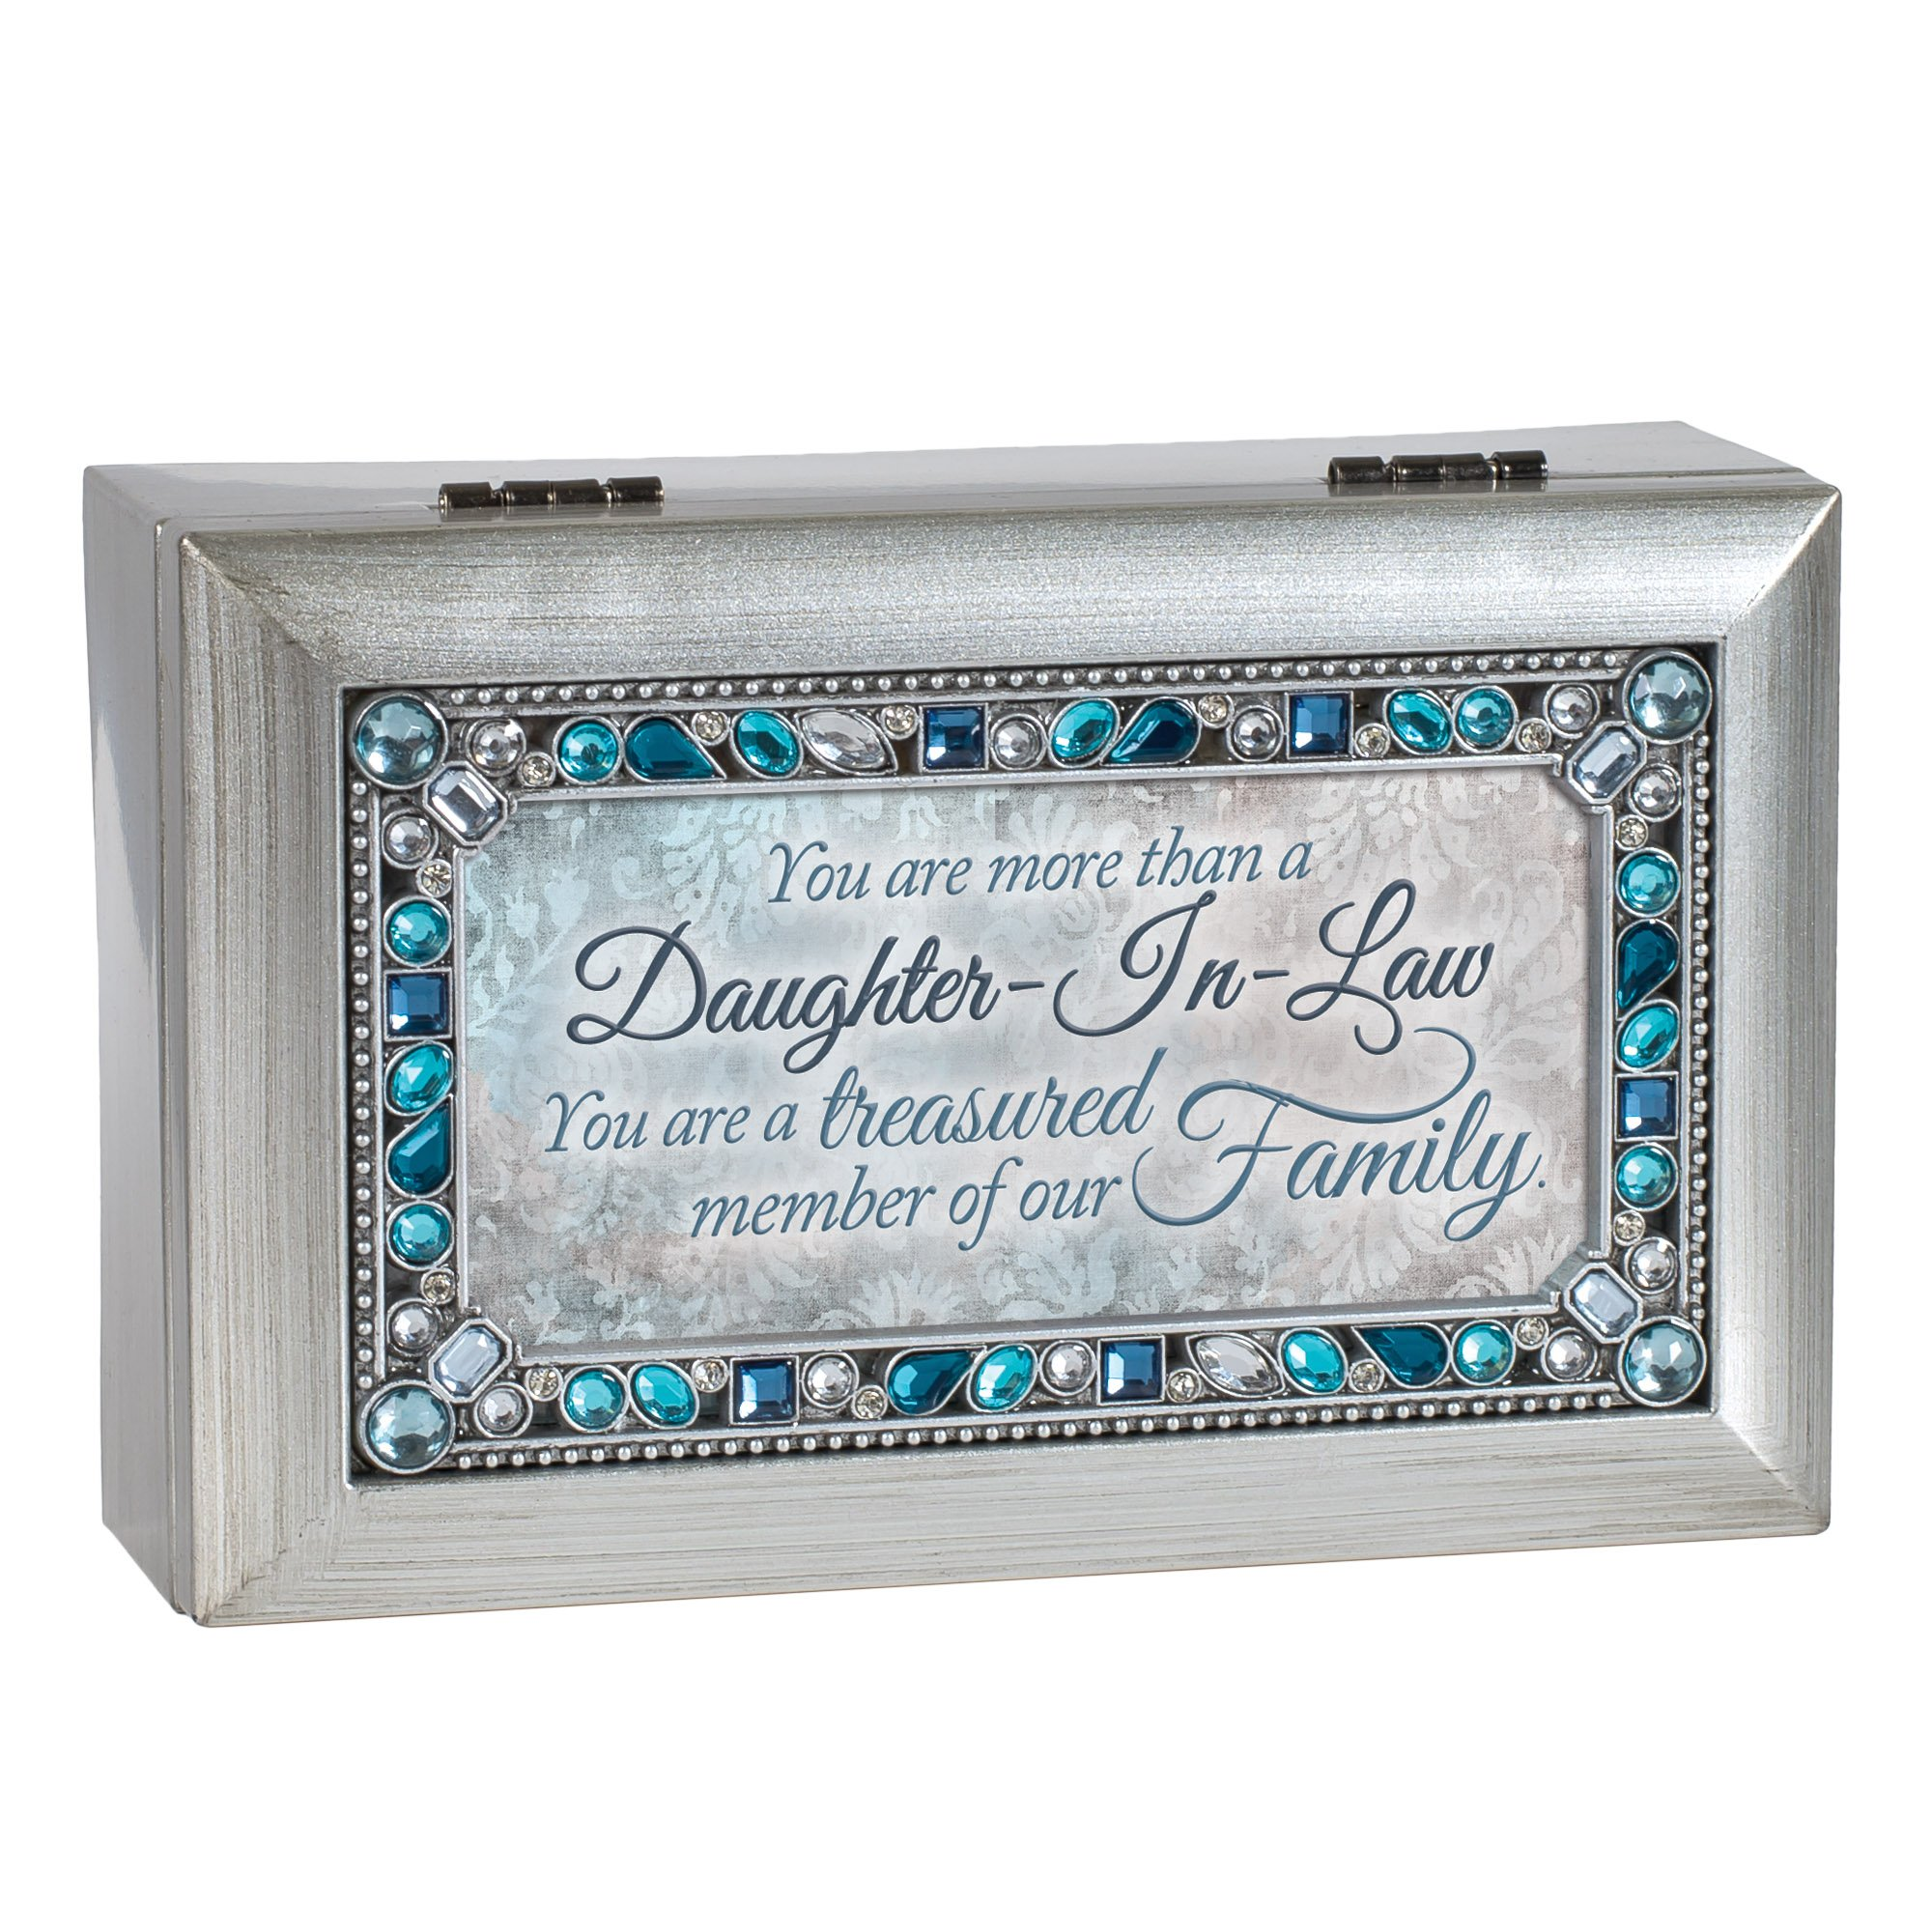 Cottage Garden Daughter in Law Silver Tone Jewel Beaded Petite Music Box Plays Wind Beneath My Wings by Cottage Garden